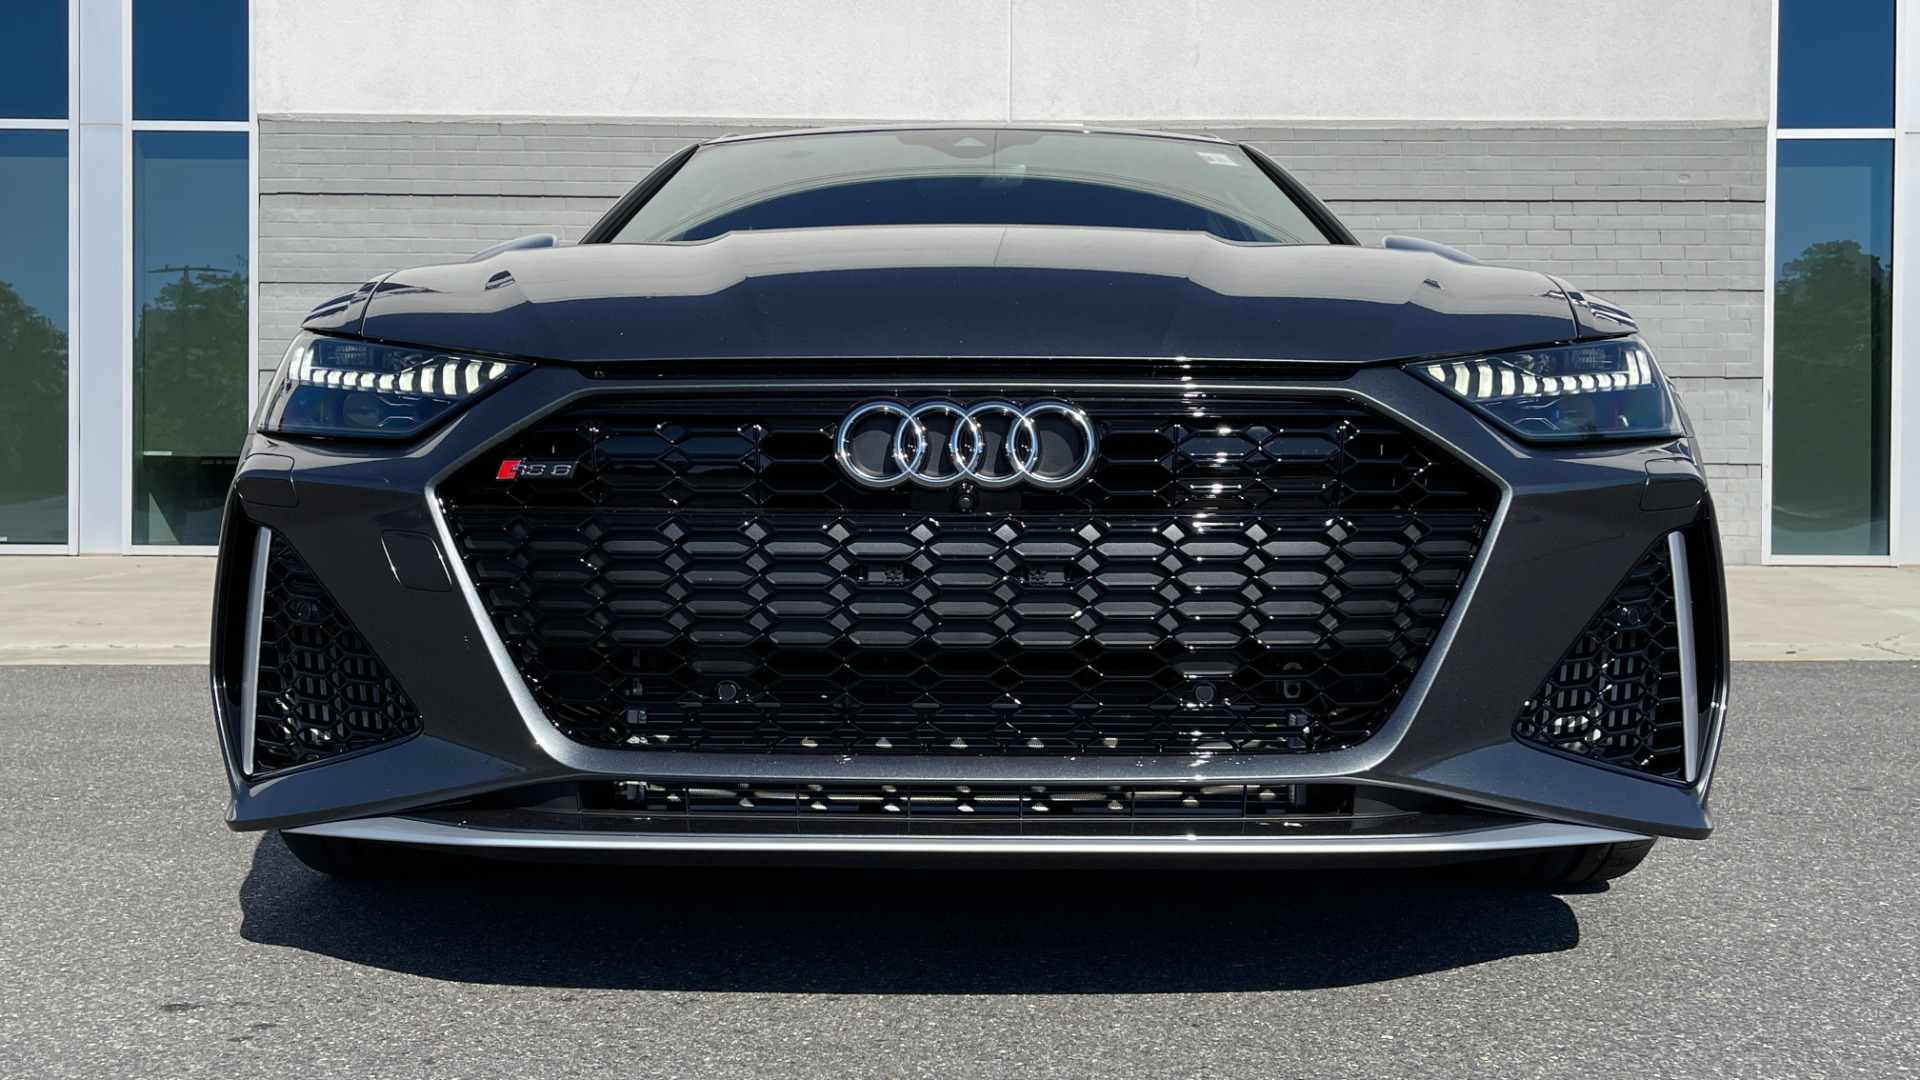 Used 2021 Audi RS 6 AVANT WAGON / EXEC PKG / CARBON OPTIC / B&O SND / DRVR ASST / SPRT EXH for sale Sold at Formula Imports in Charlotte NC 28227 8